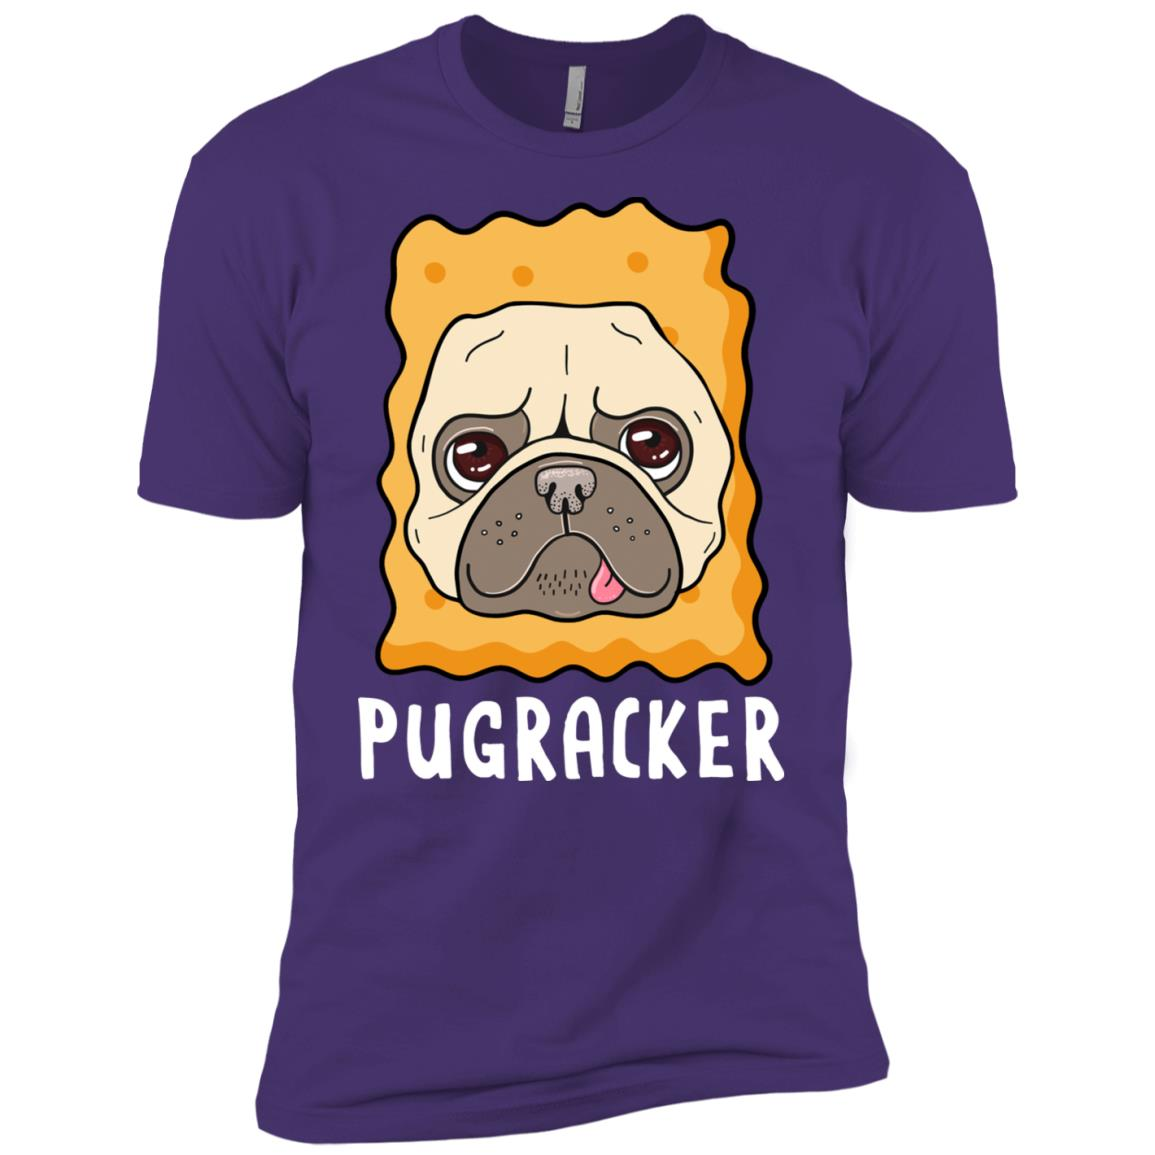 Pugracker Pug Cracker Costume Men Short Sleeve T-Shirt